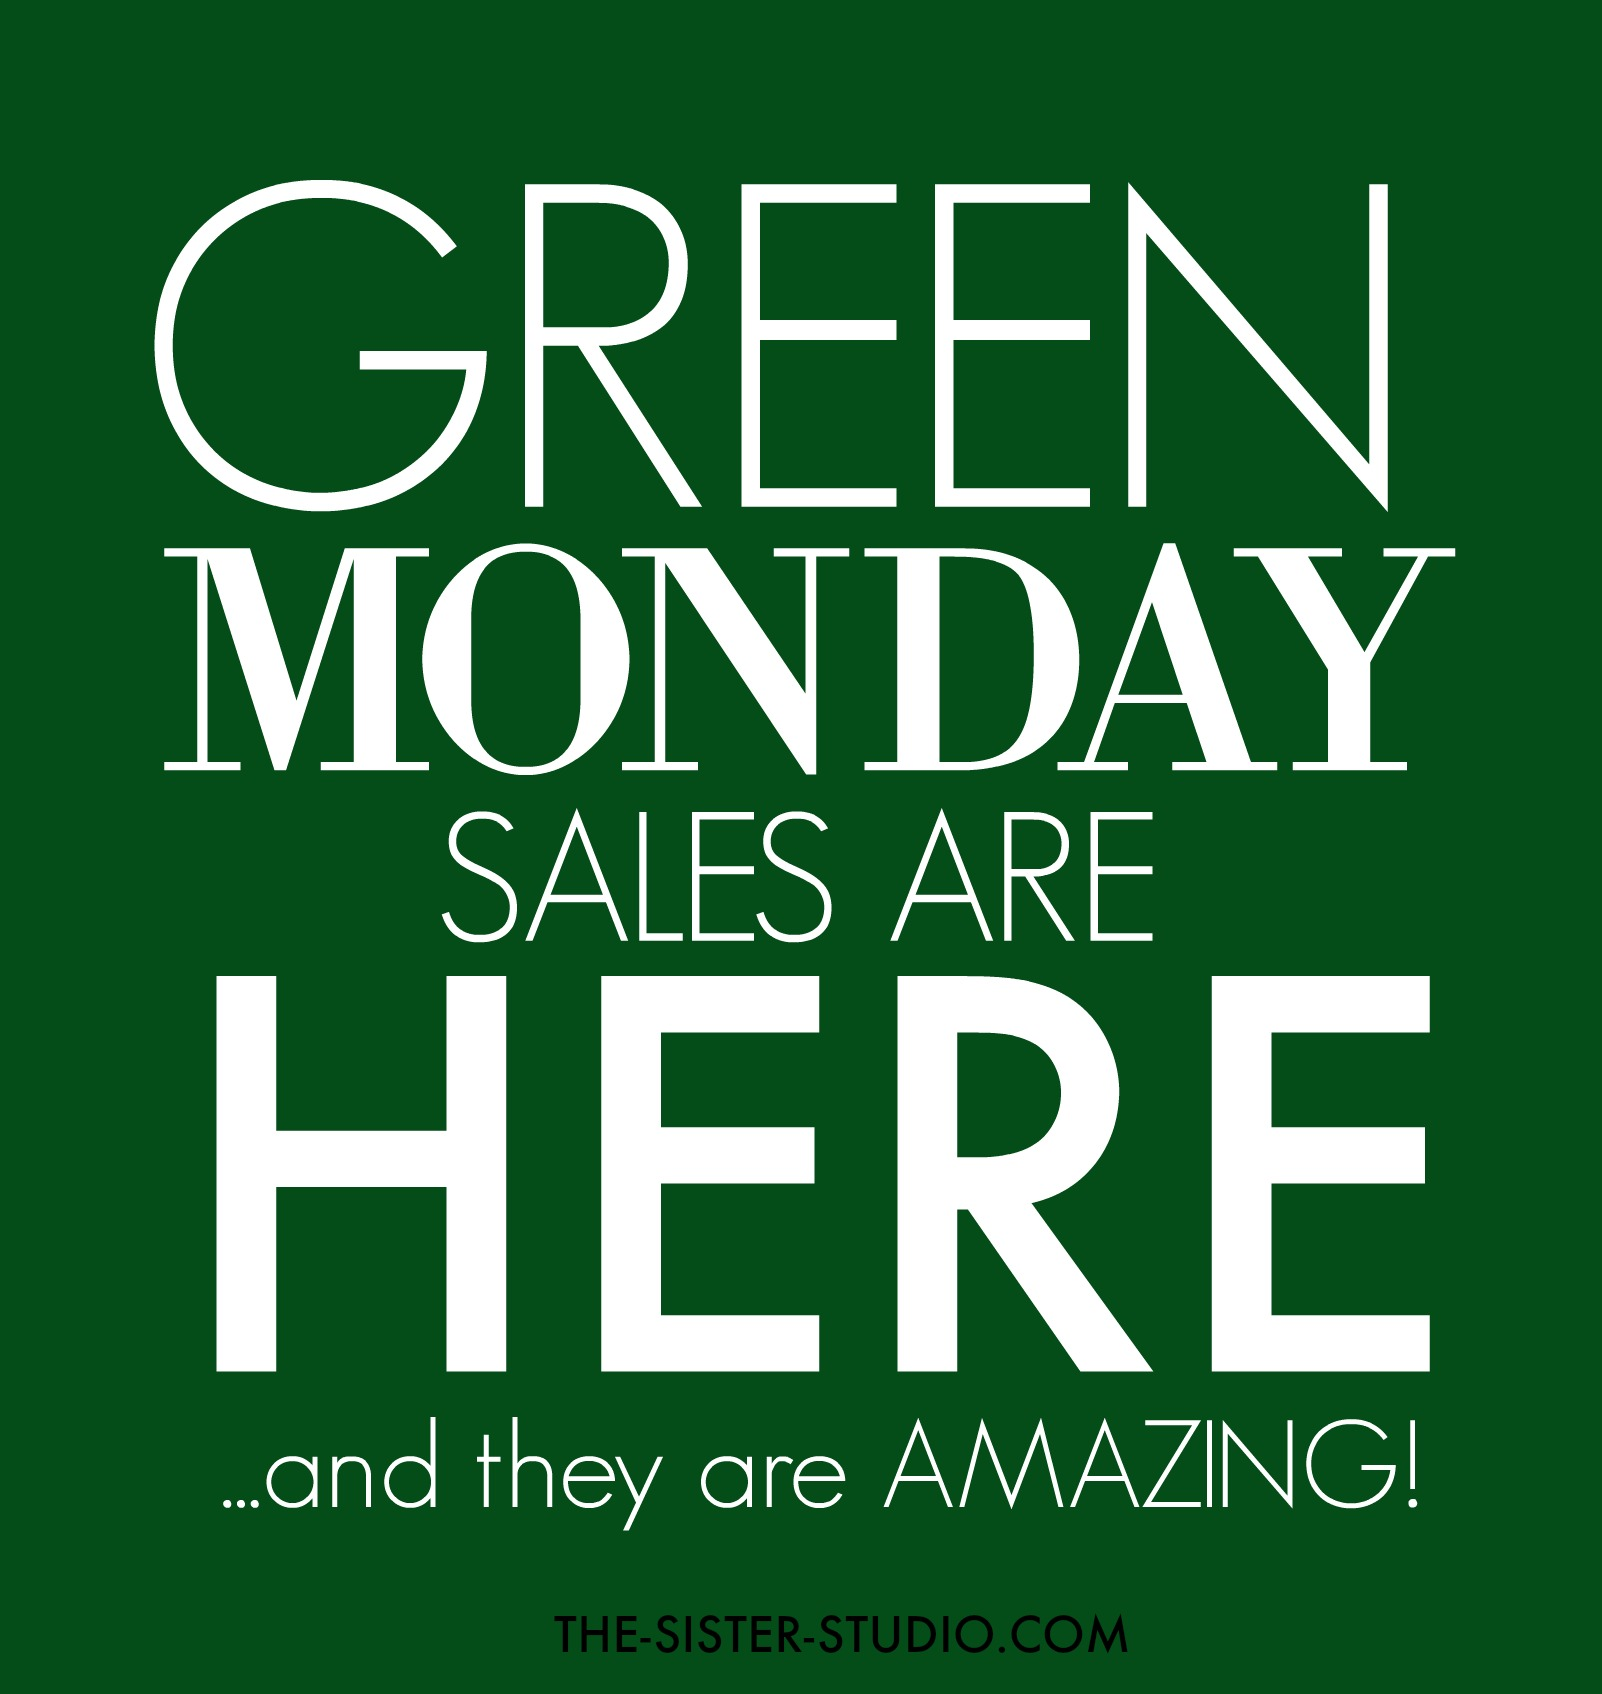 Green Monday Sales